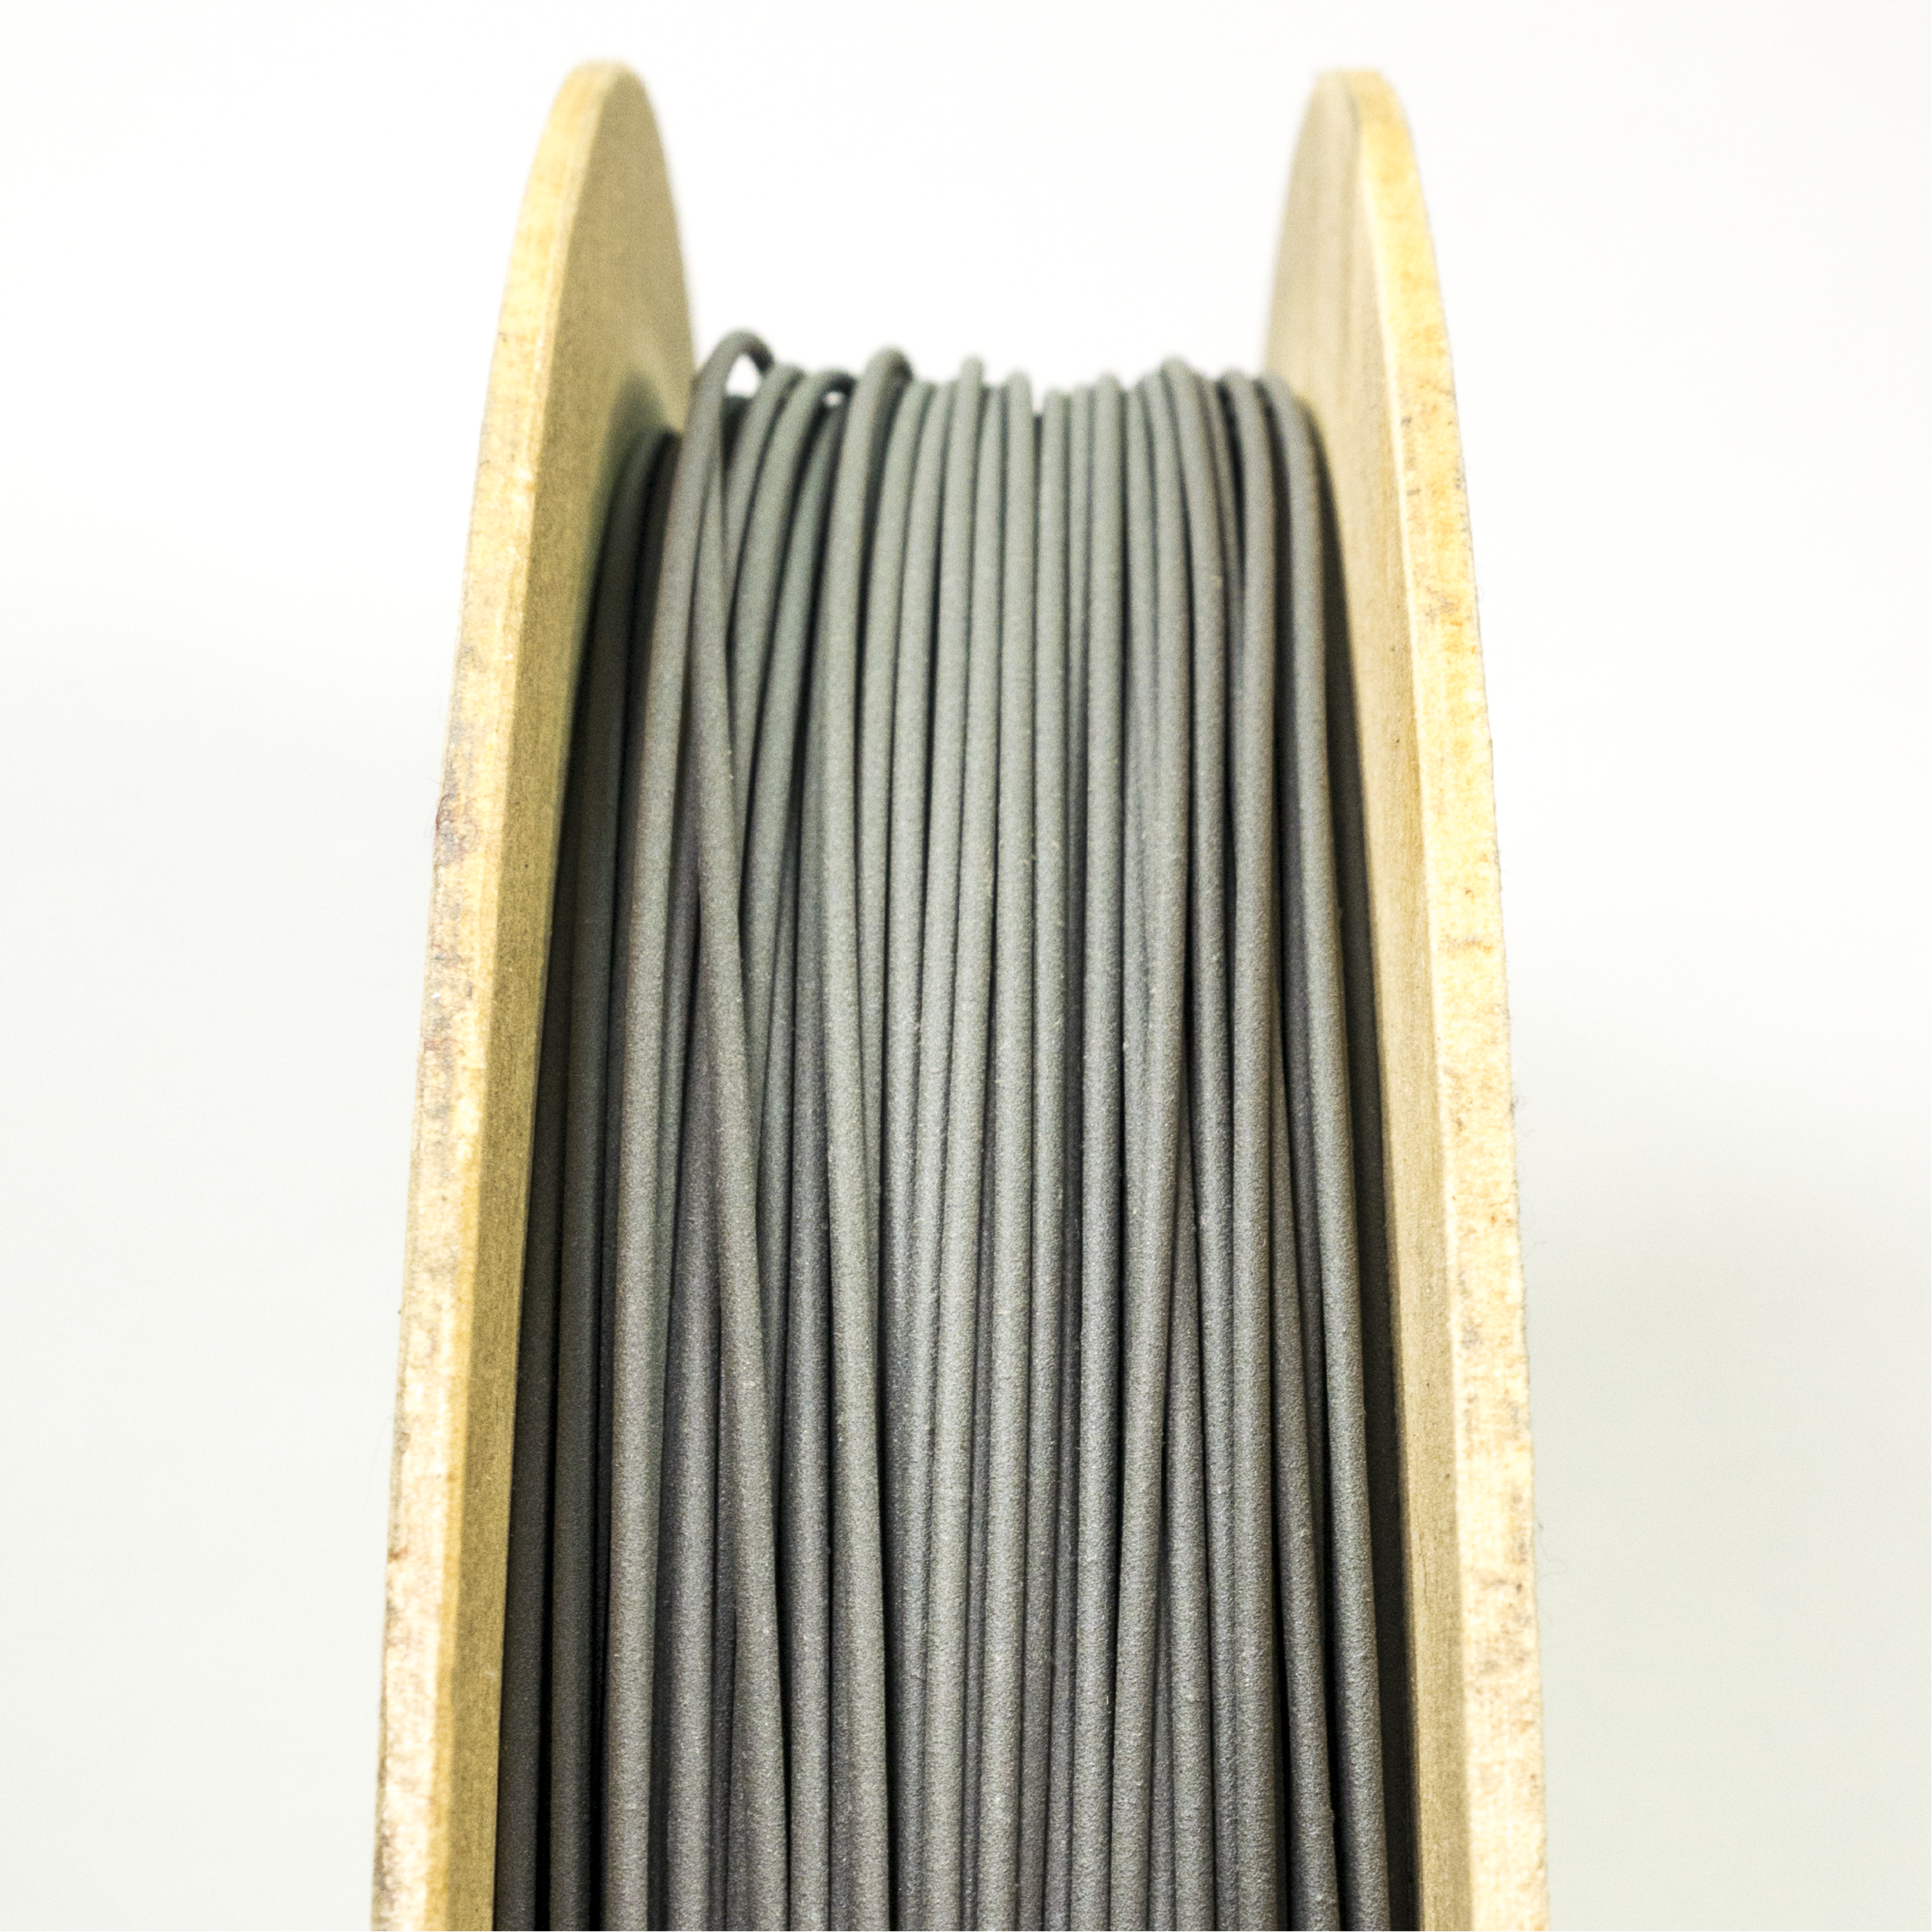 Stainless Steel 316L Filament -